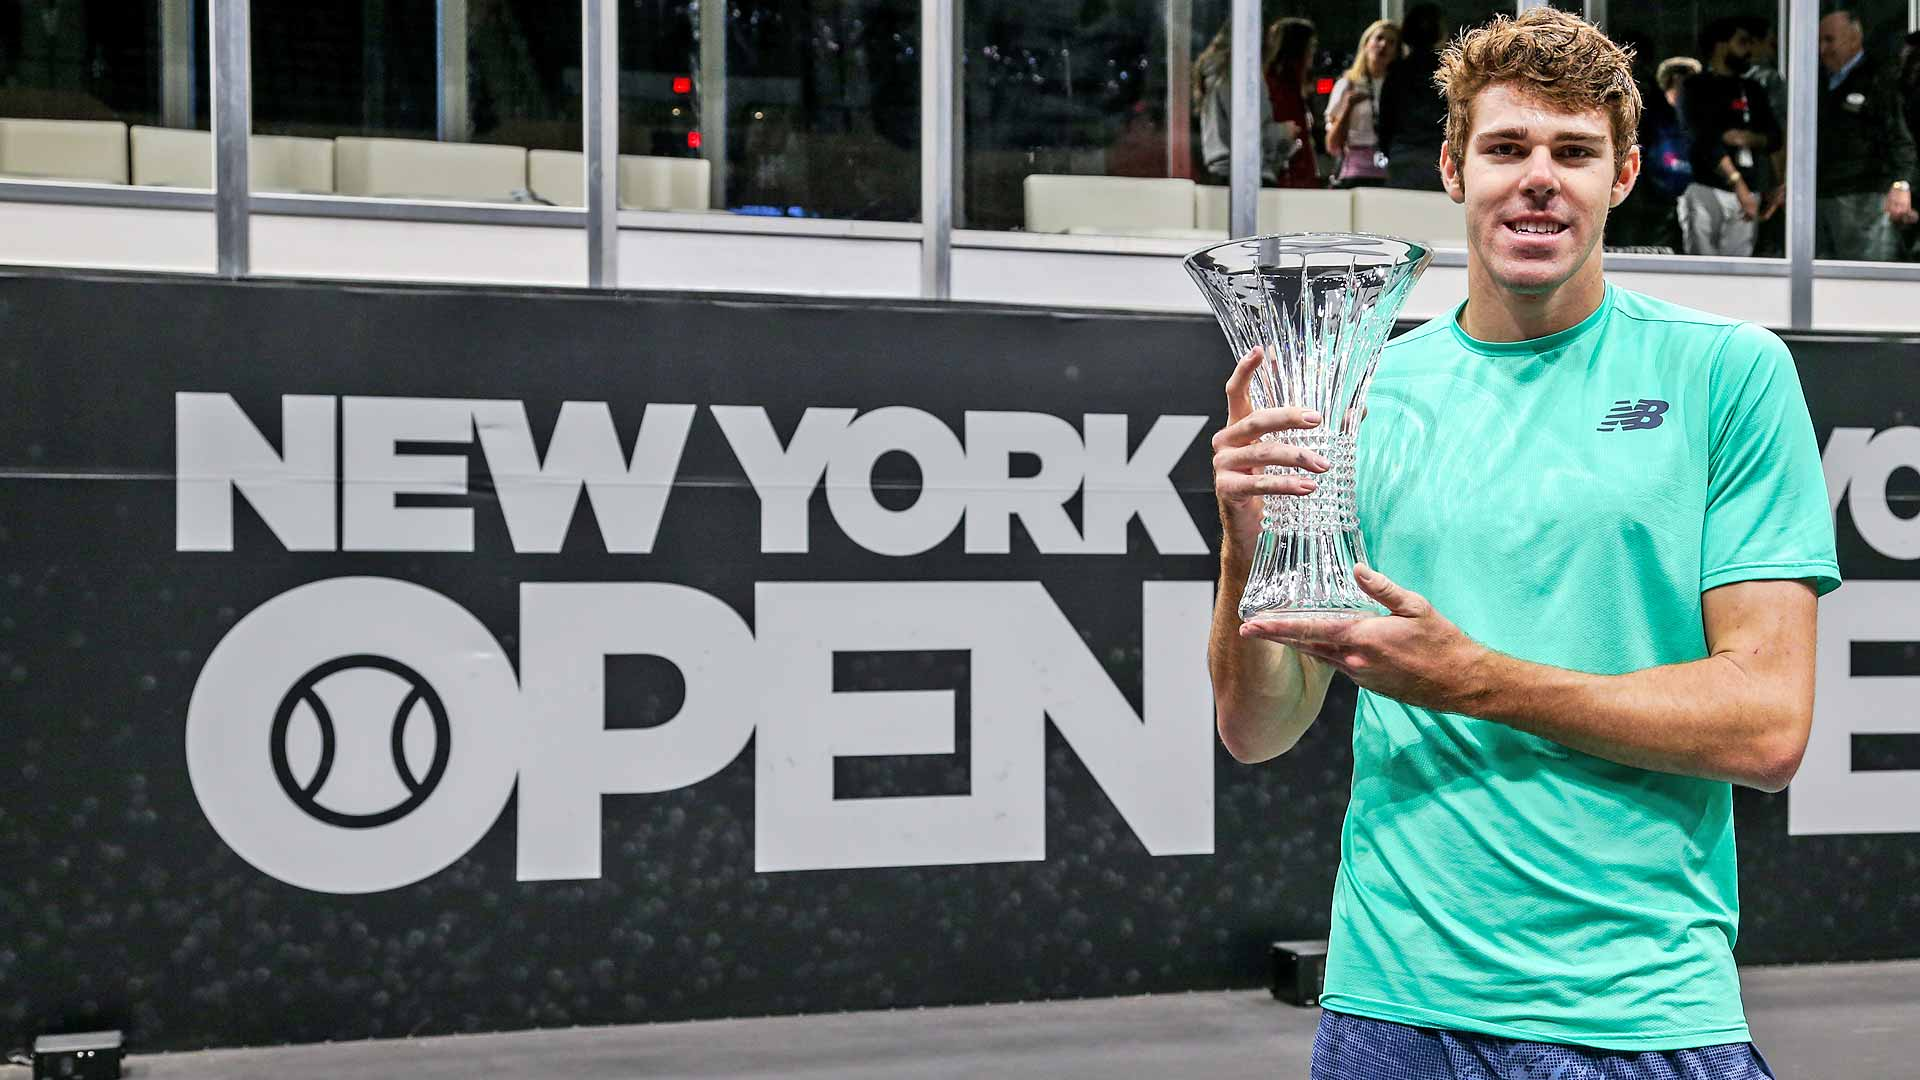 Opelka Wins 2019 <a href='https://www.atptour.com/en/tournaments/new-york/424/overview'>New York Open</a>